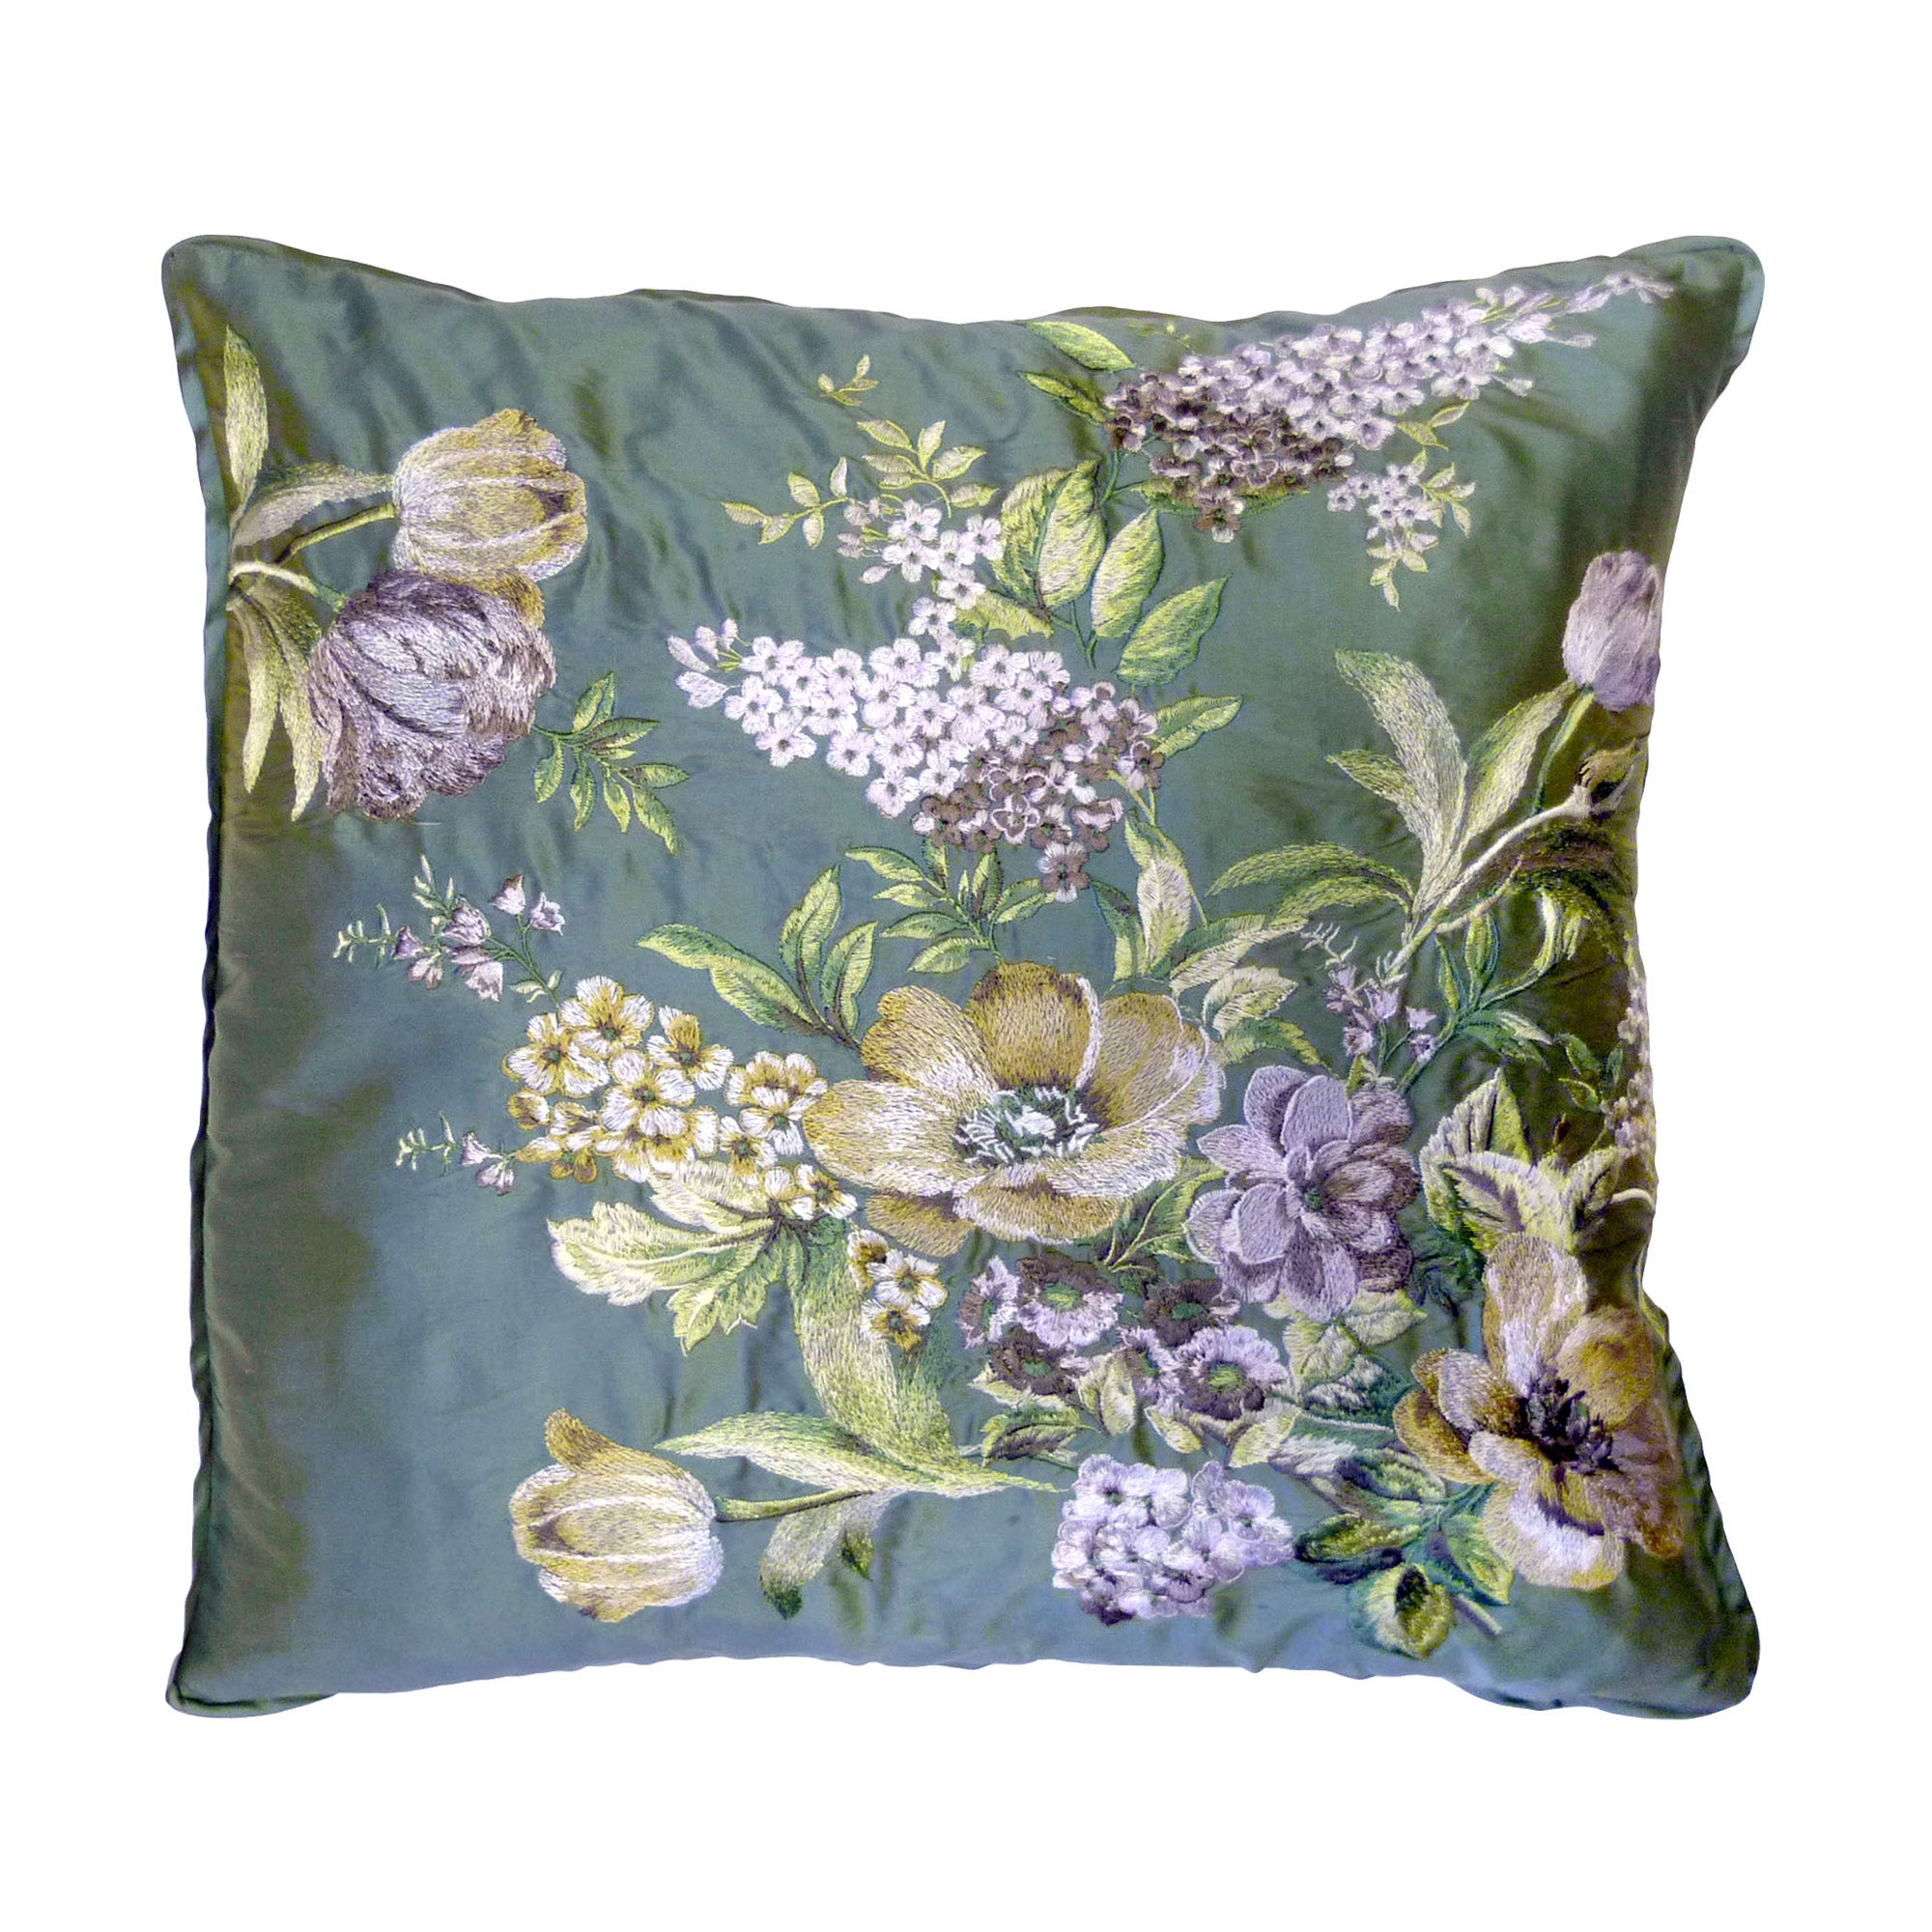 Dorma Brympton Embroidered Cushion